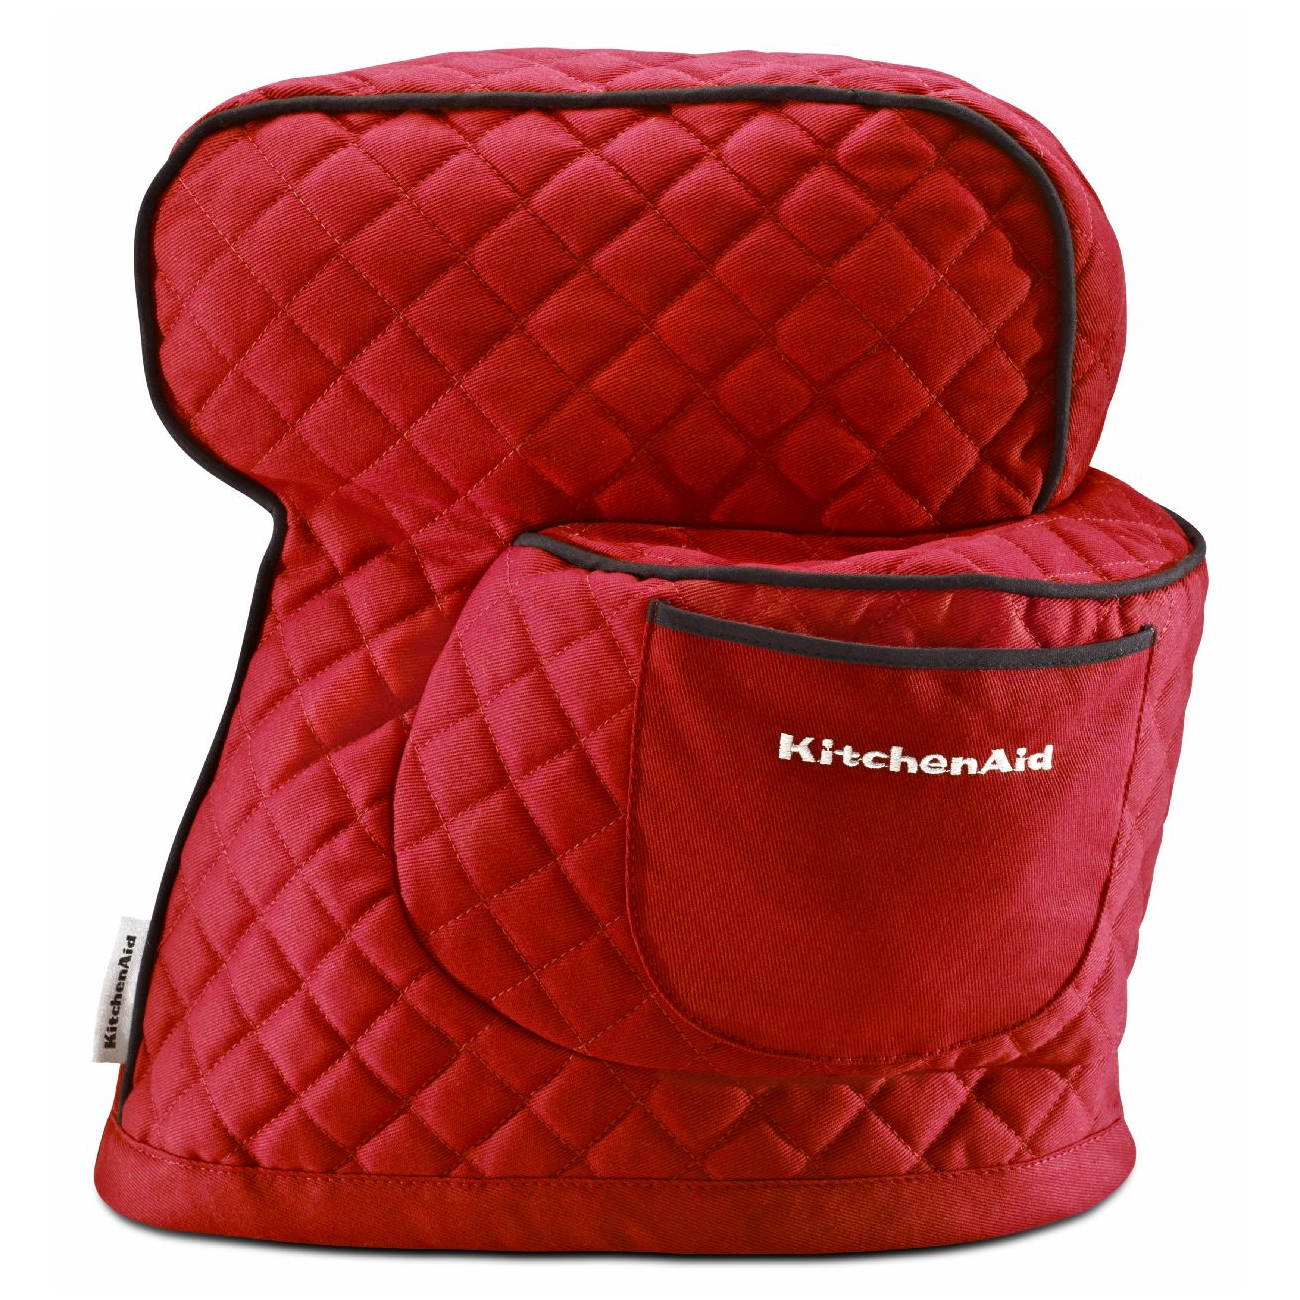 KitchenAid Empire Red 100% Cotton Fitted Stand Mixer Cover